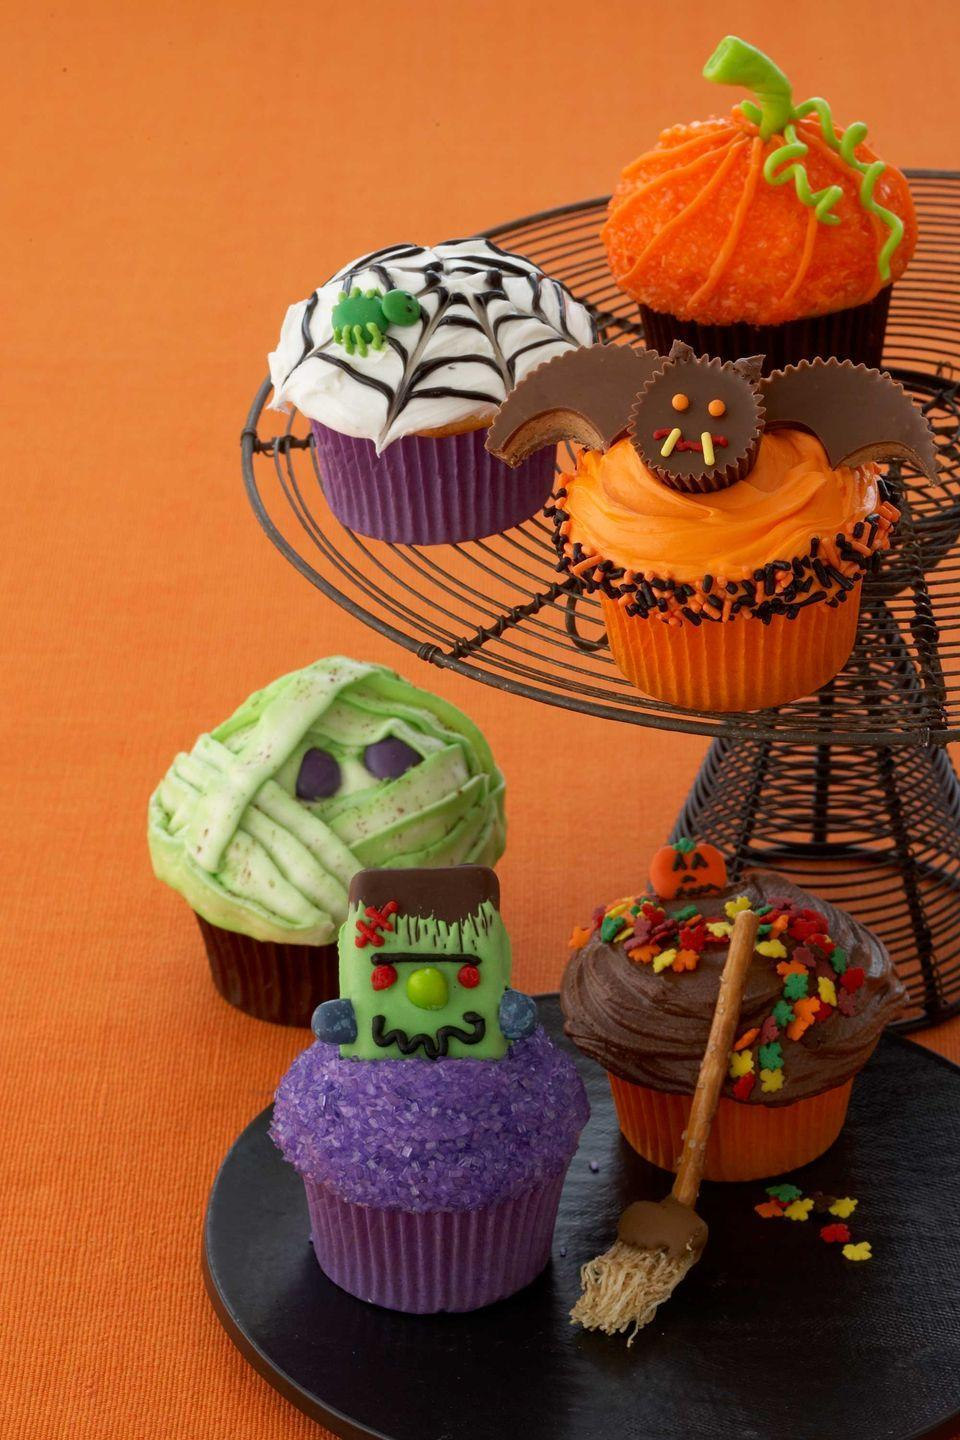 """<p>Make any Halloween party more festive with these so-simple treats resembling spider webs, pumpkins, and more.</p><p><a href=""""https://www.womansday.com/food-recipes/food-drinks/recipes/a10778/creepy-cupcakes-recipe-122165/"""" rel=""""nofollow noopener"""" target=""""_blank"""" data-ylk=""""slk:Get the Creepy Cupcakes recipe."""" class=""""link rapid-noclick-resp""""><em>Get the Creepy Cupcakes recipe.</em></a></p>"""